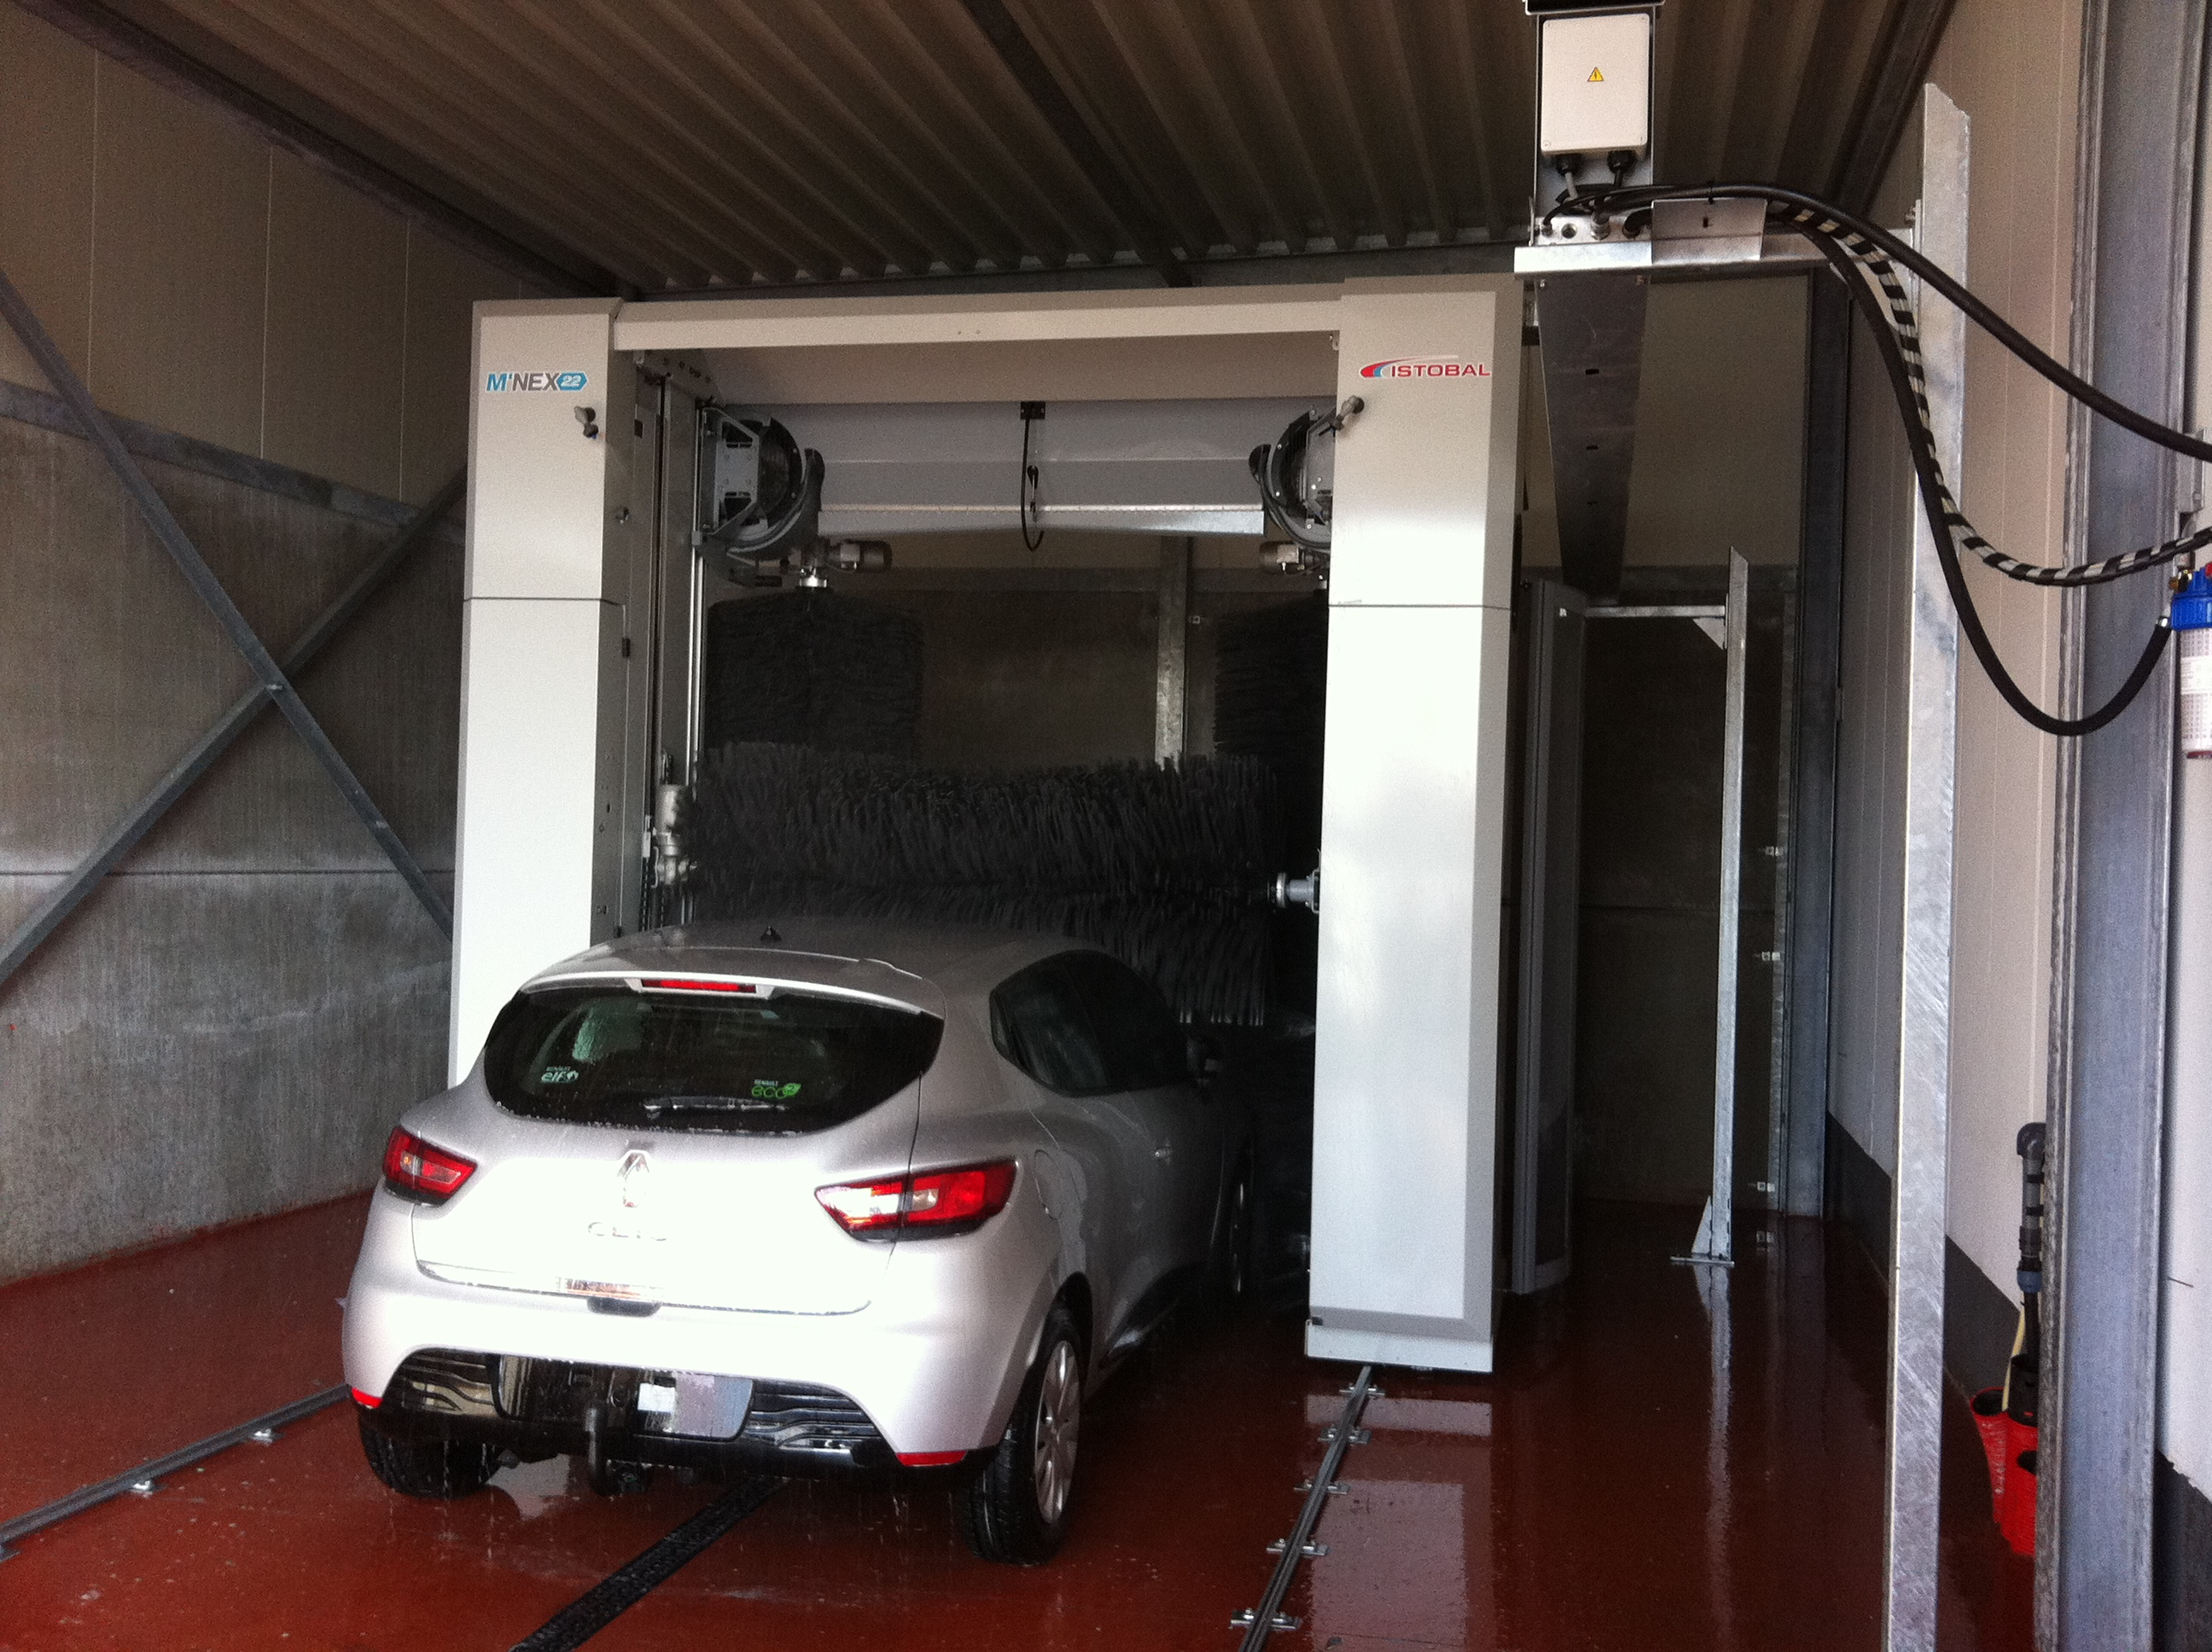 Eco wash systems rollover m22 bij garage renault neri for Garage renault evrecy 14